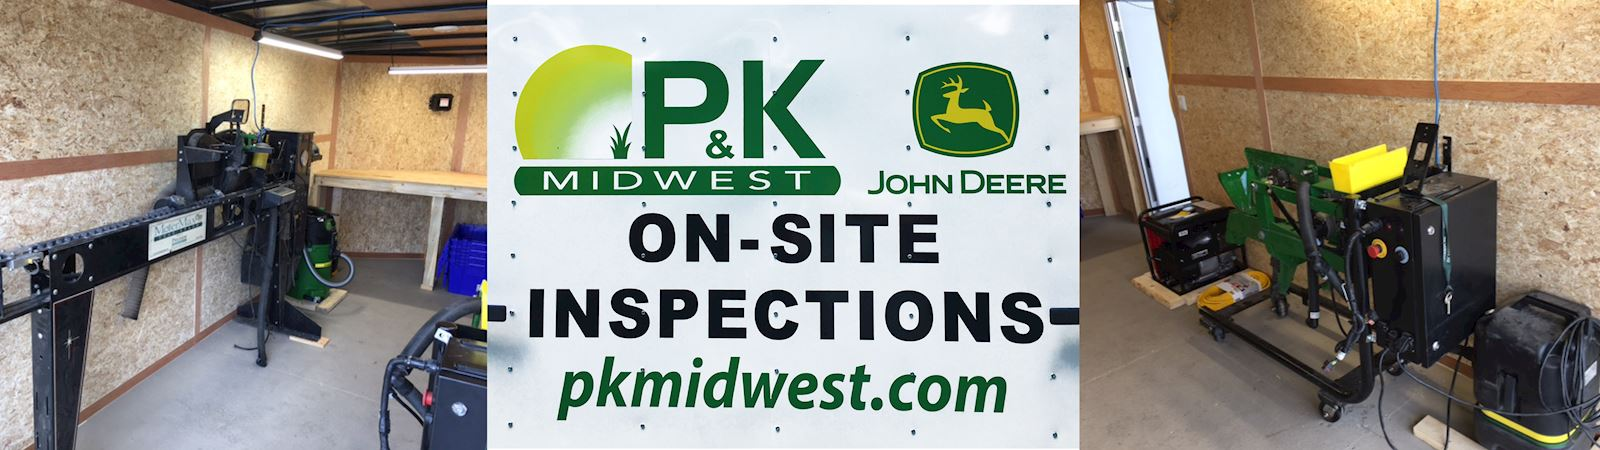 On-Site Inspections at P&K Midwest